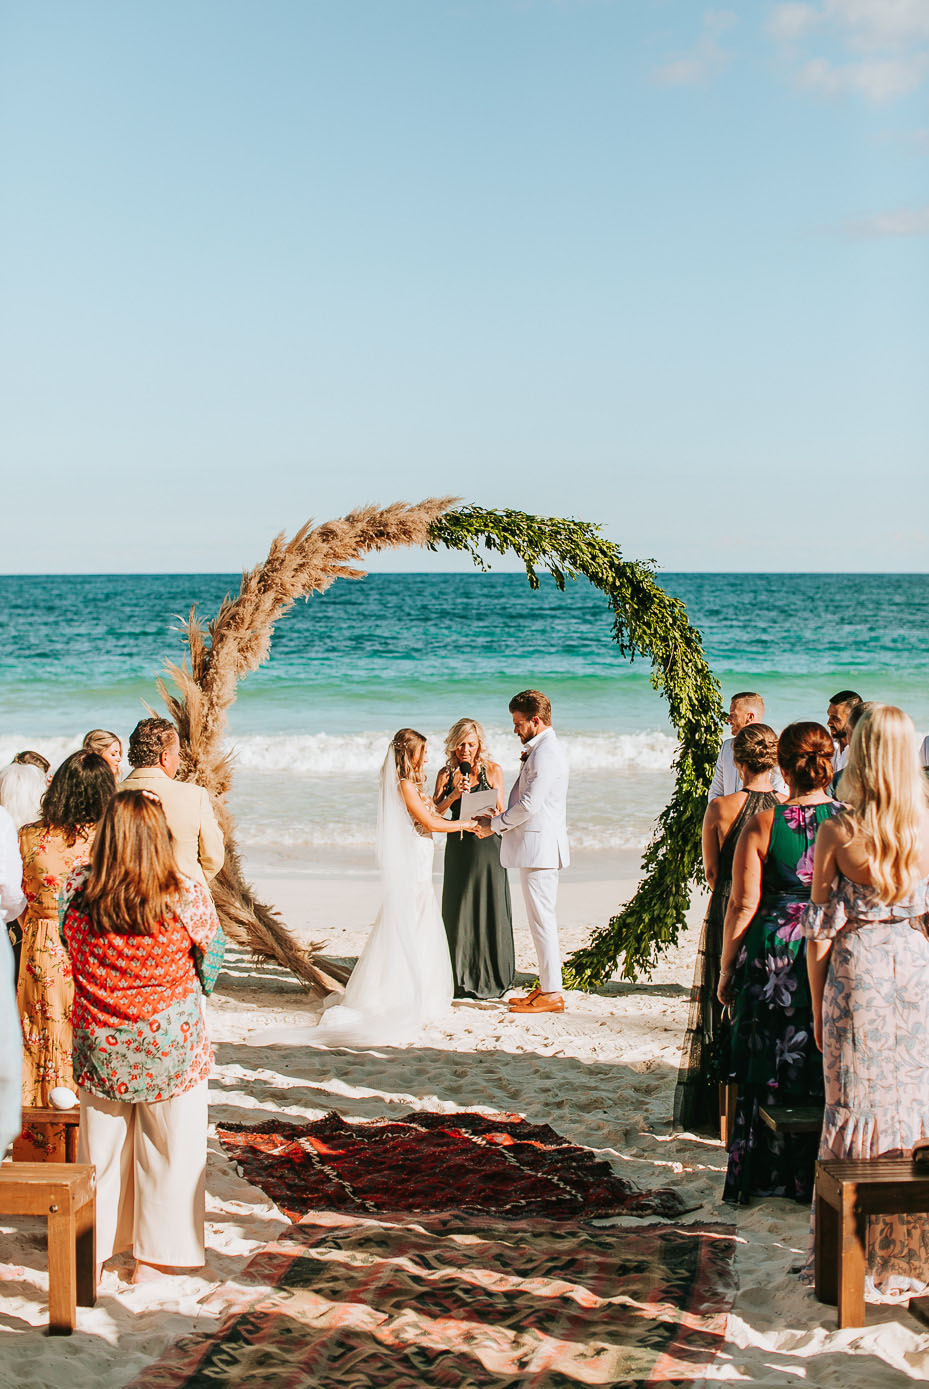 The wedding arch was a round one, of greenert and pampas grass plus boho rugs